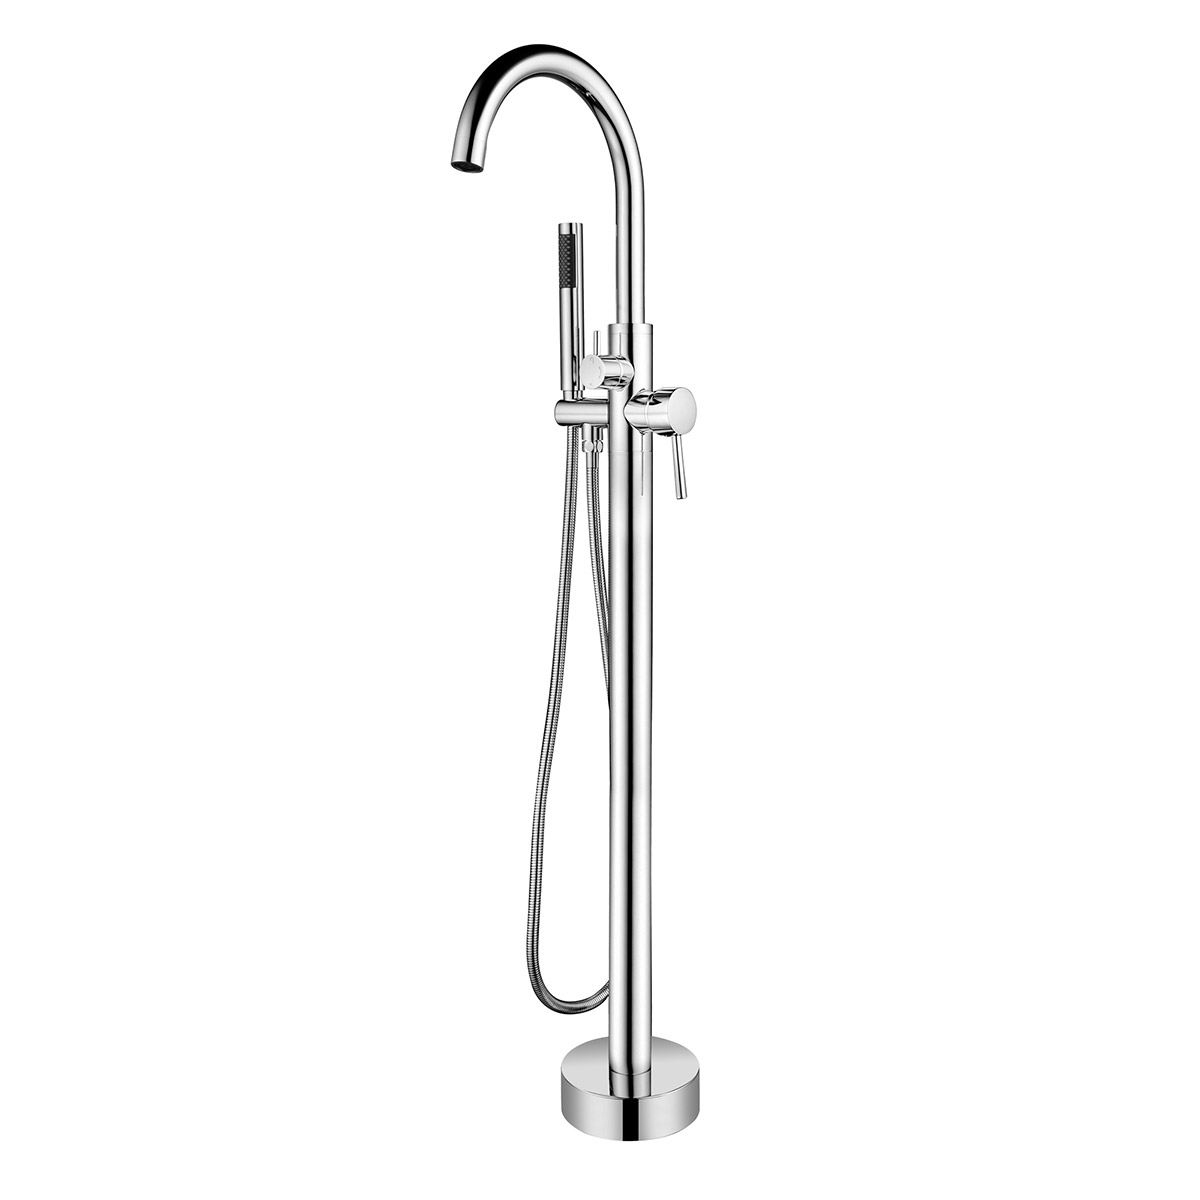 Pulse ShowerSpas Chrome Freestanding Tub Filler with Diverter